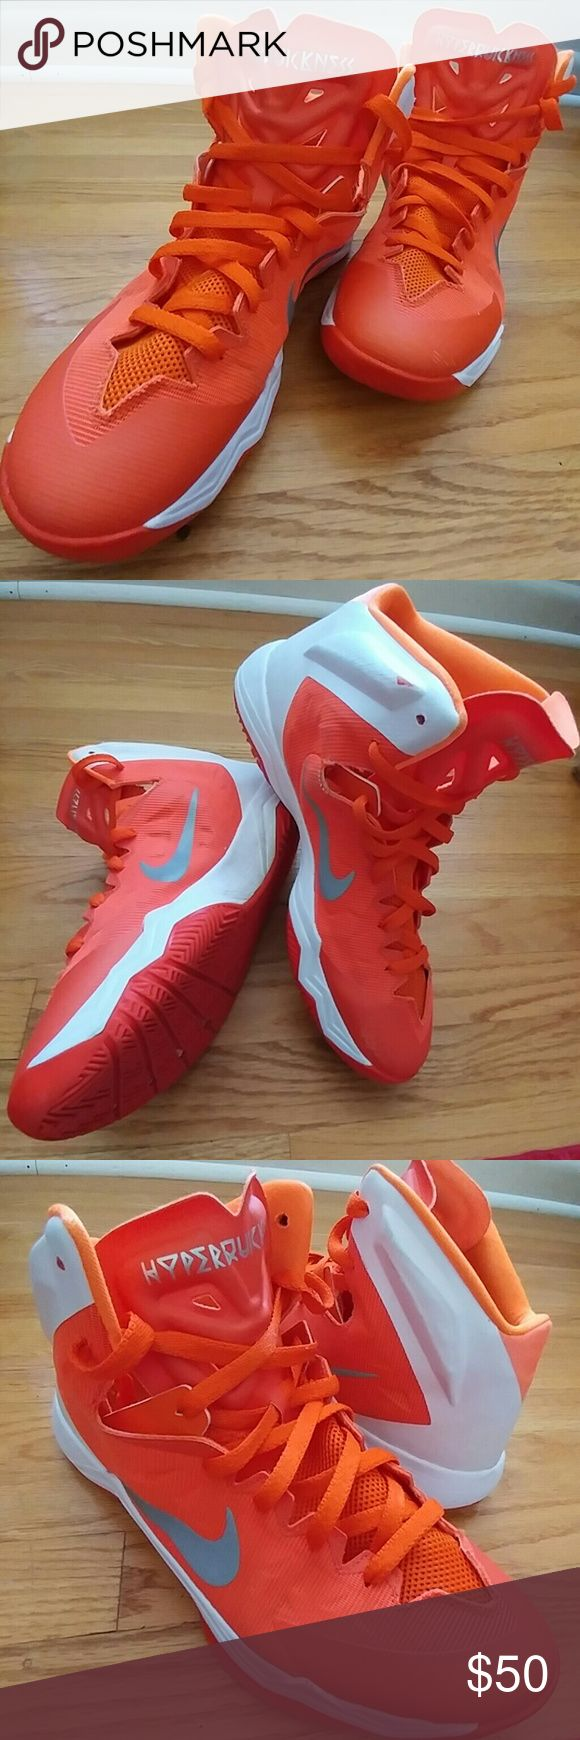 MEN'S NIKE ZOOM HYPERQUICKNESS SNEAKERS SIZE 13.5 Men's NIKE ZOOM HYPERQUICKNESS Sneakers Size 13.5.  Orange with White.  Clean.  EUC.  In great used  shape.  Well cared for. Nike Shoes Sneakers